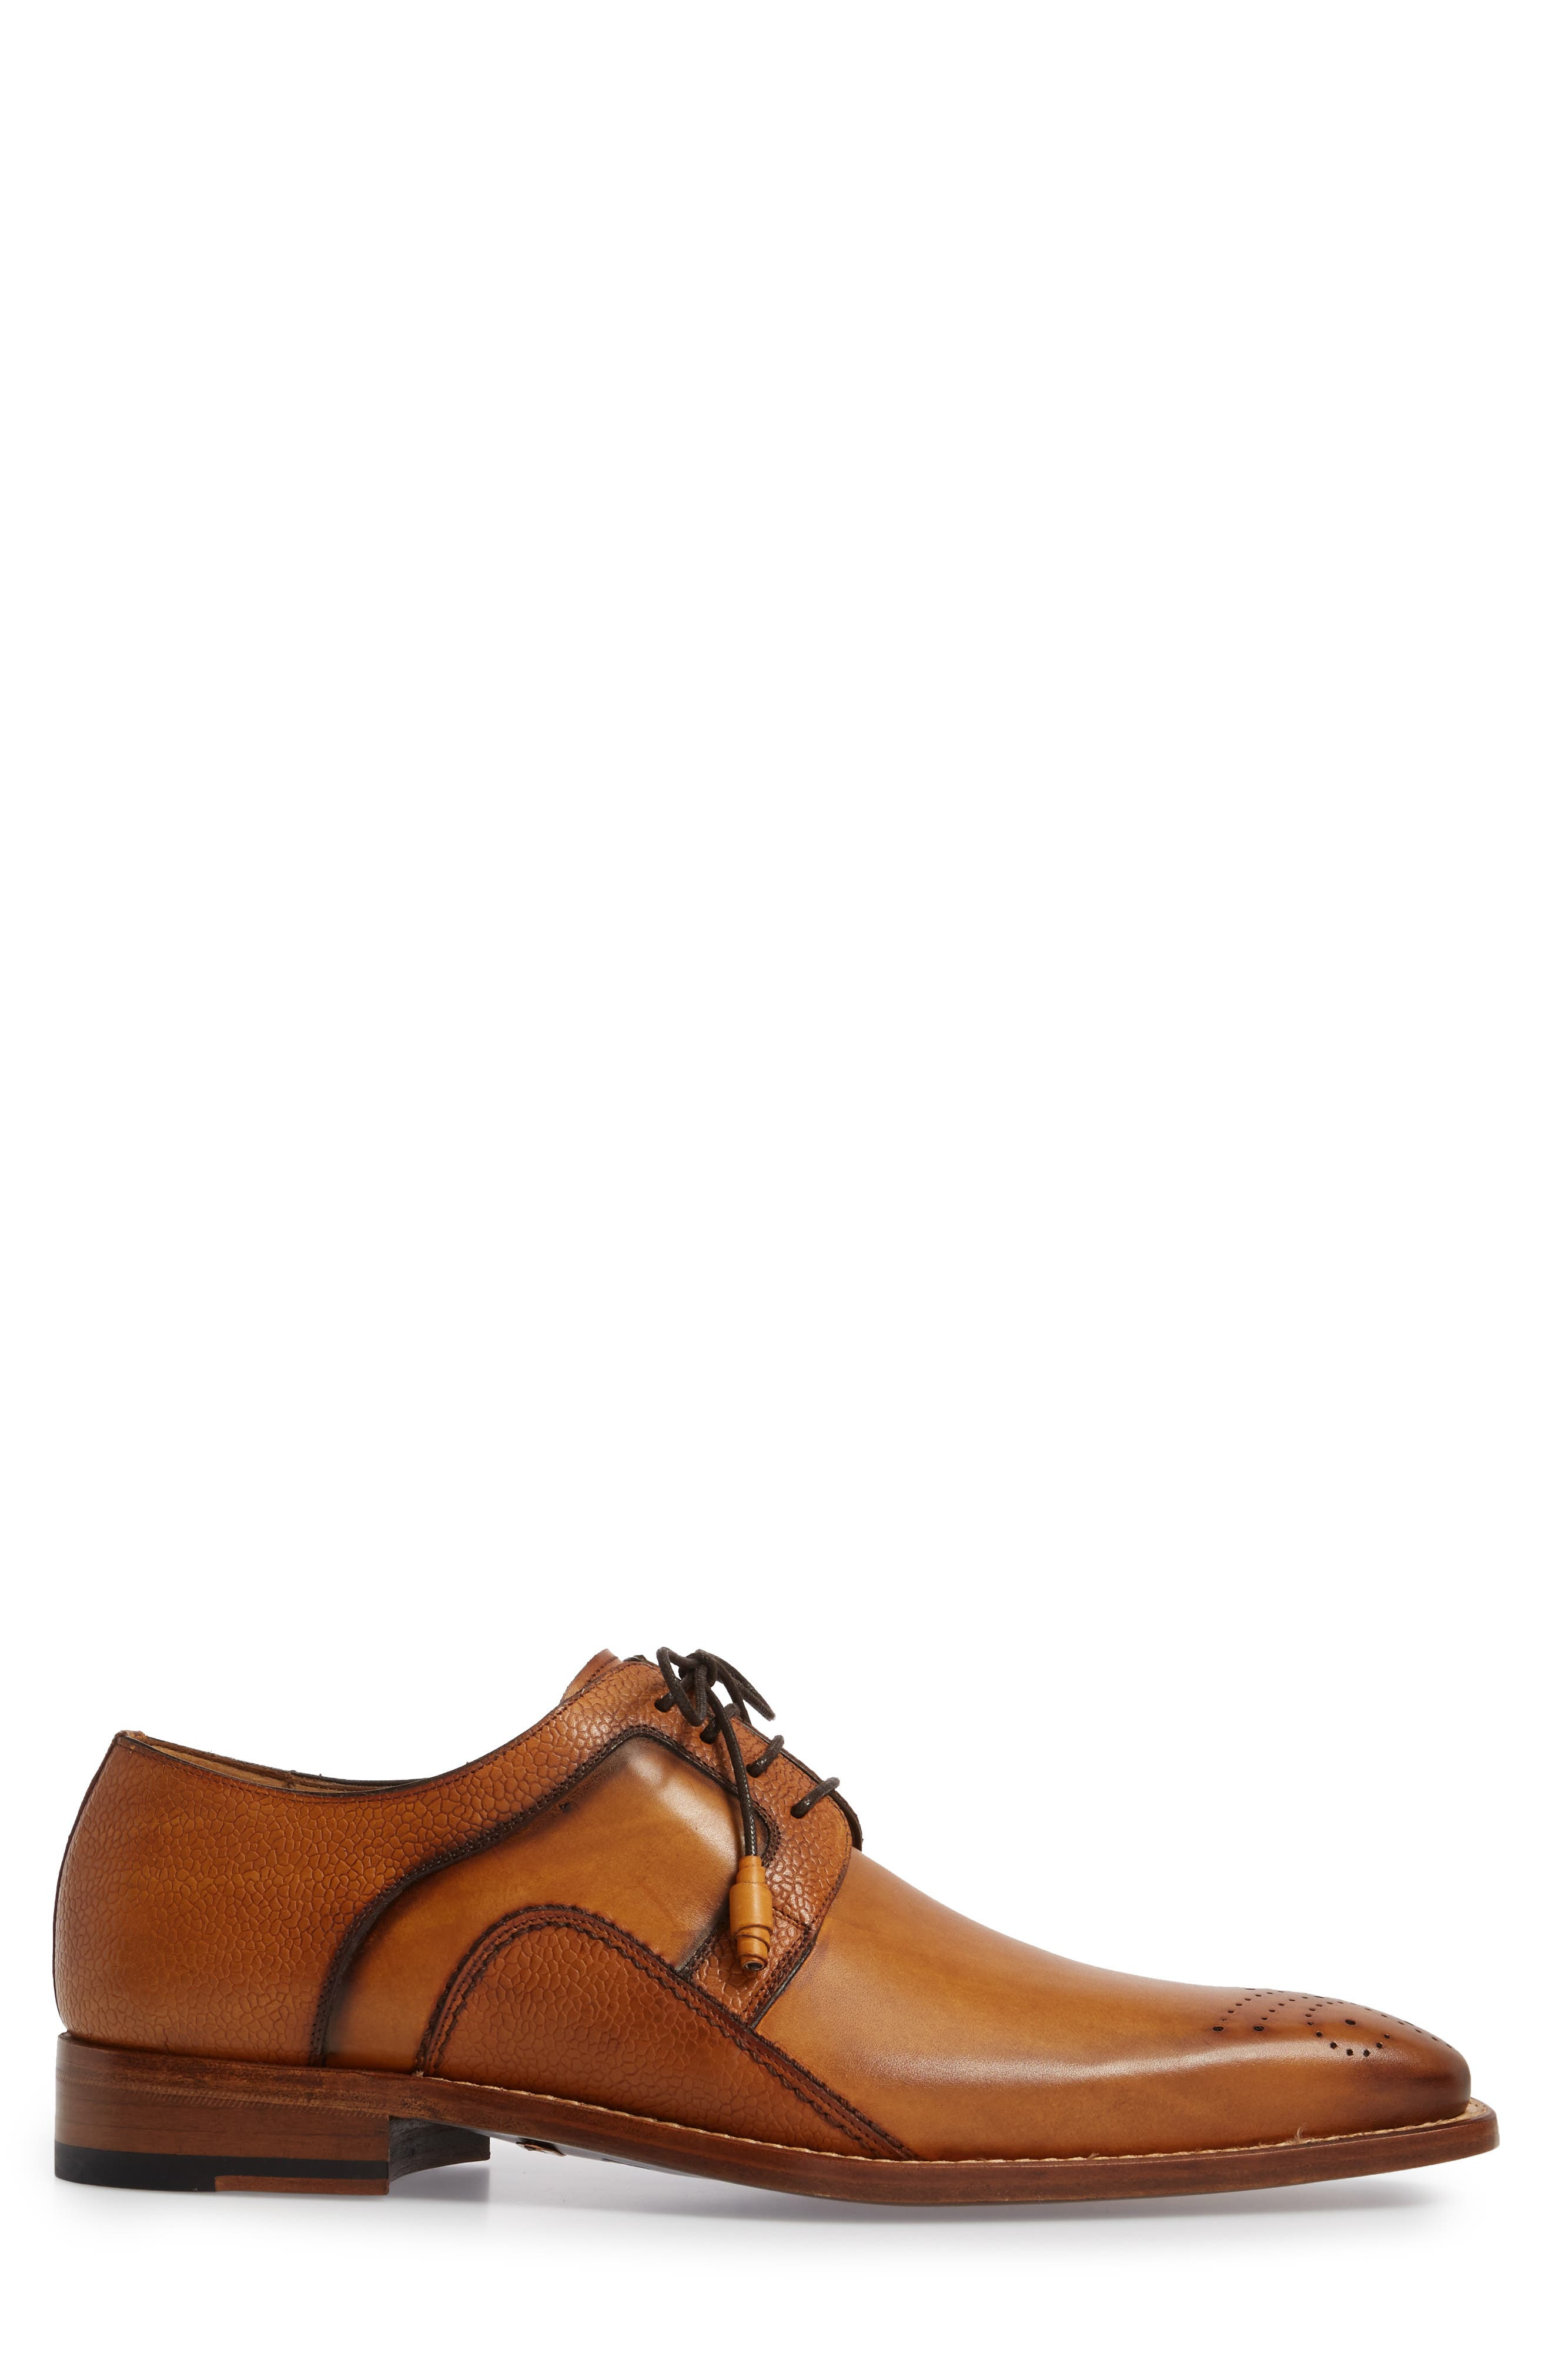 Saturno Medallion Toe Derby,                             Alternate thumbnail 3, color,                             TAN LEATHER